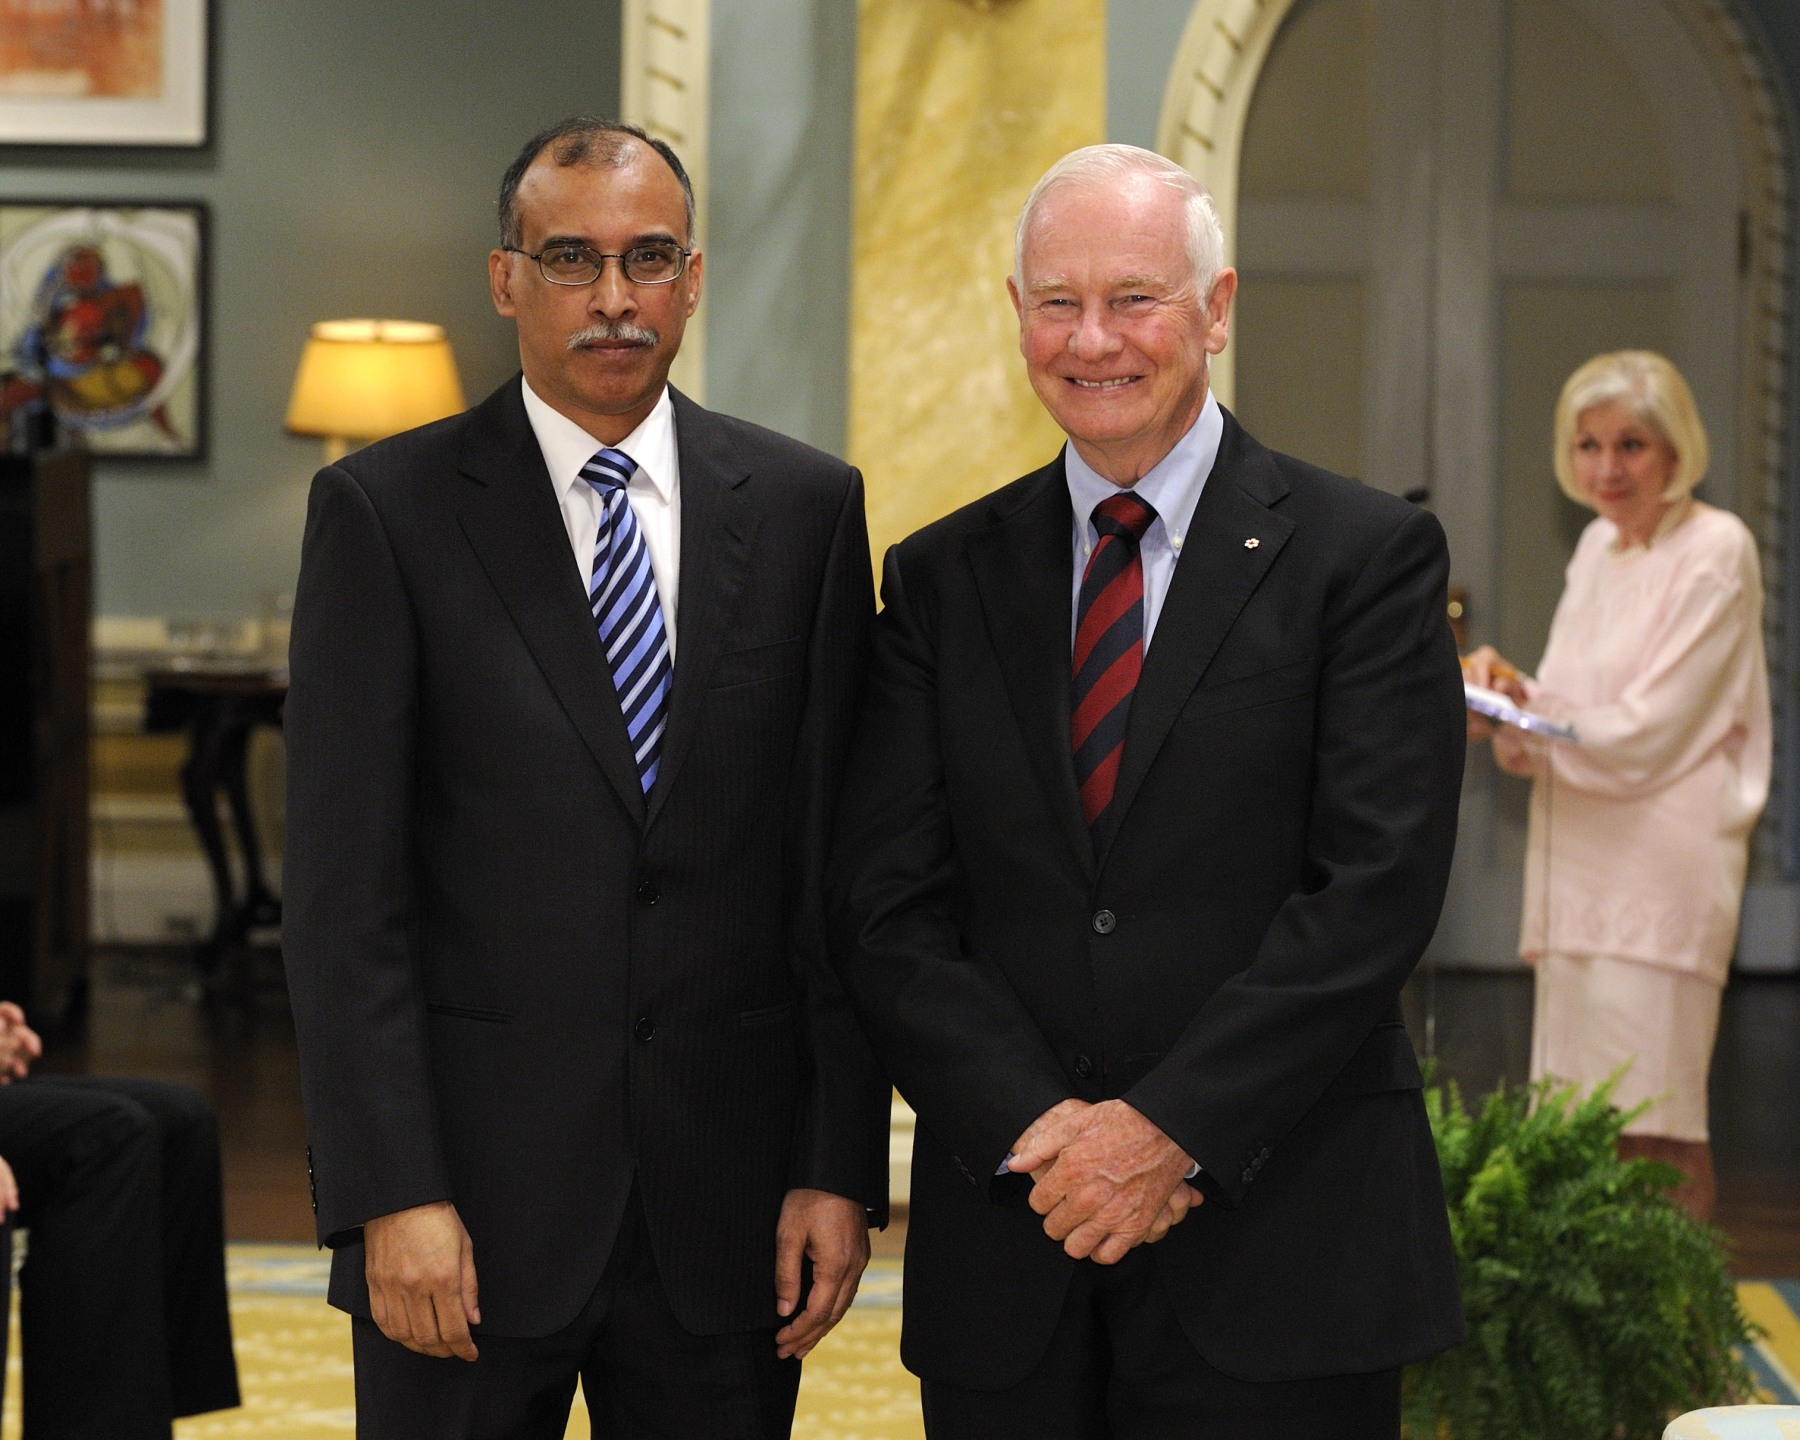 The Governor General received the credentials of His Excellency His Excellency Kamrul Ahsan, High Commissioner for the People's Republic of Bangladesh.